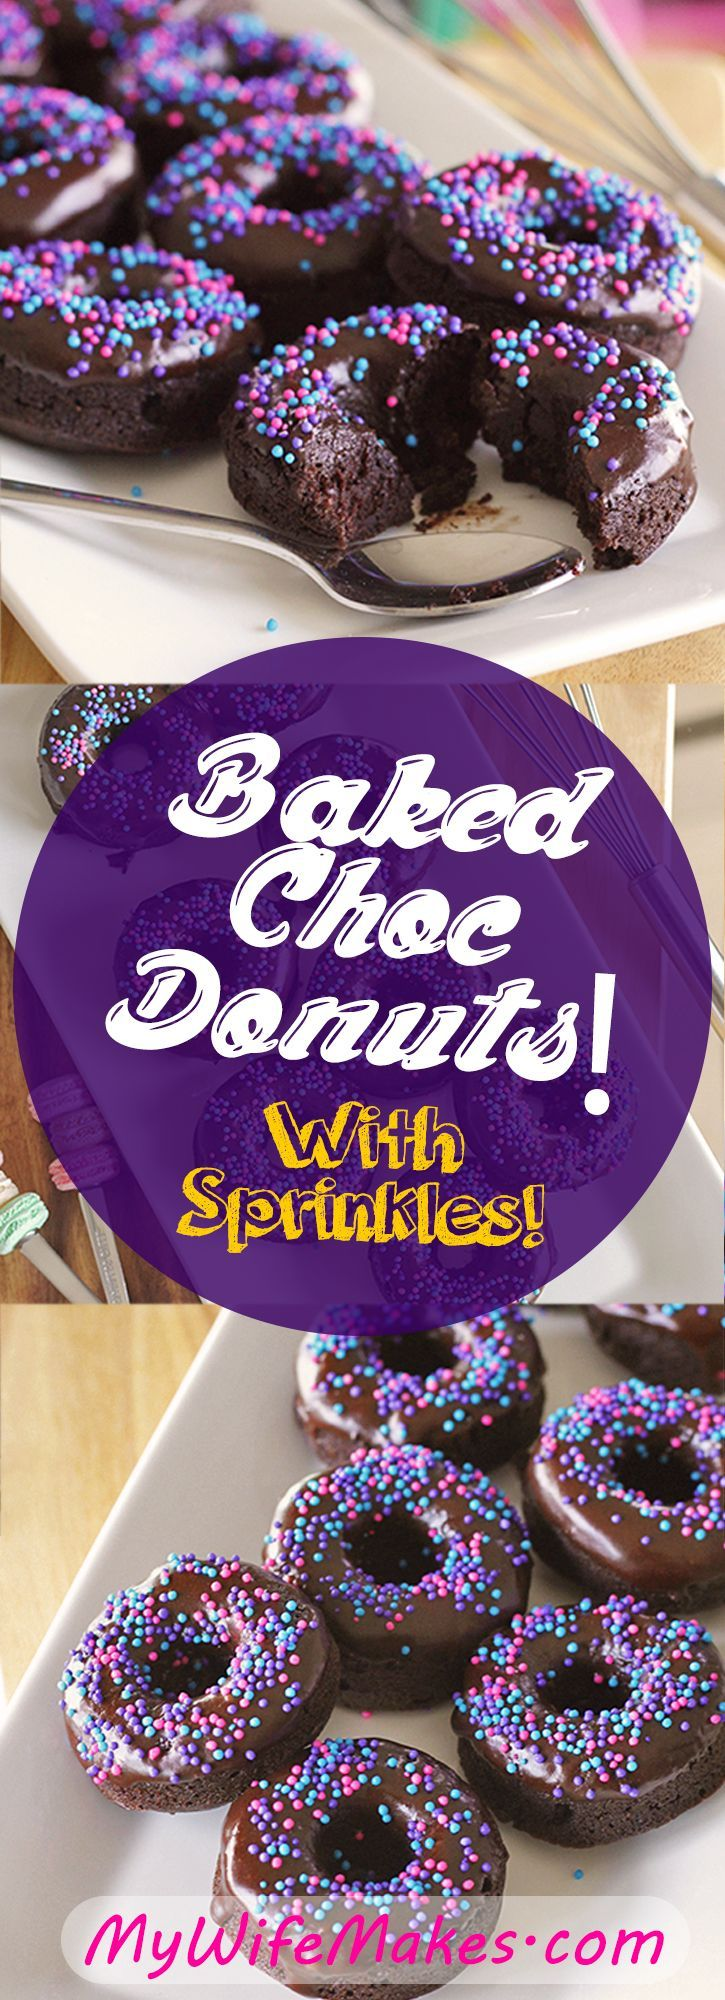 Baked Chocolate Donuts (Not Fried!).